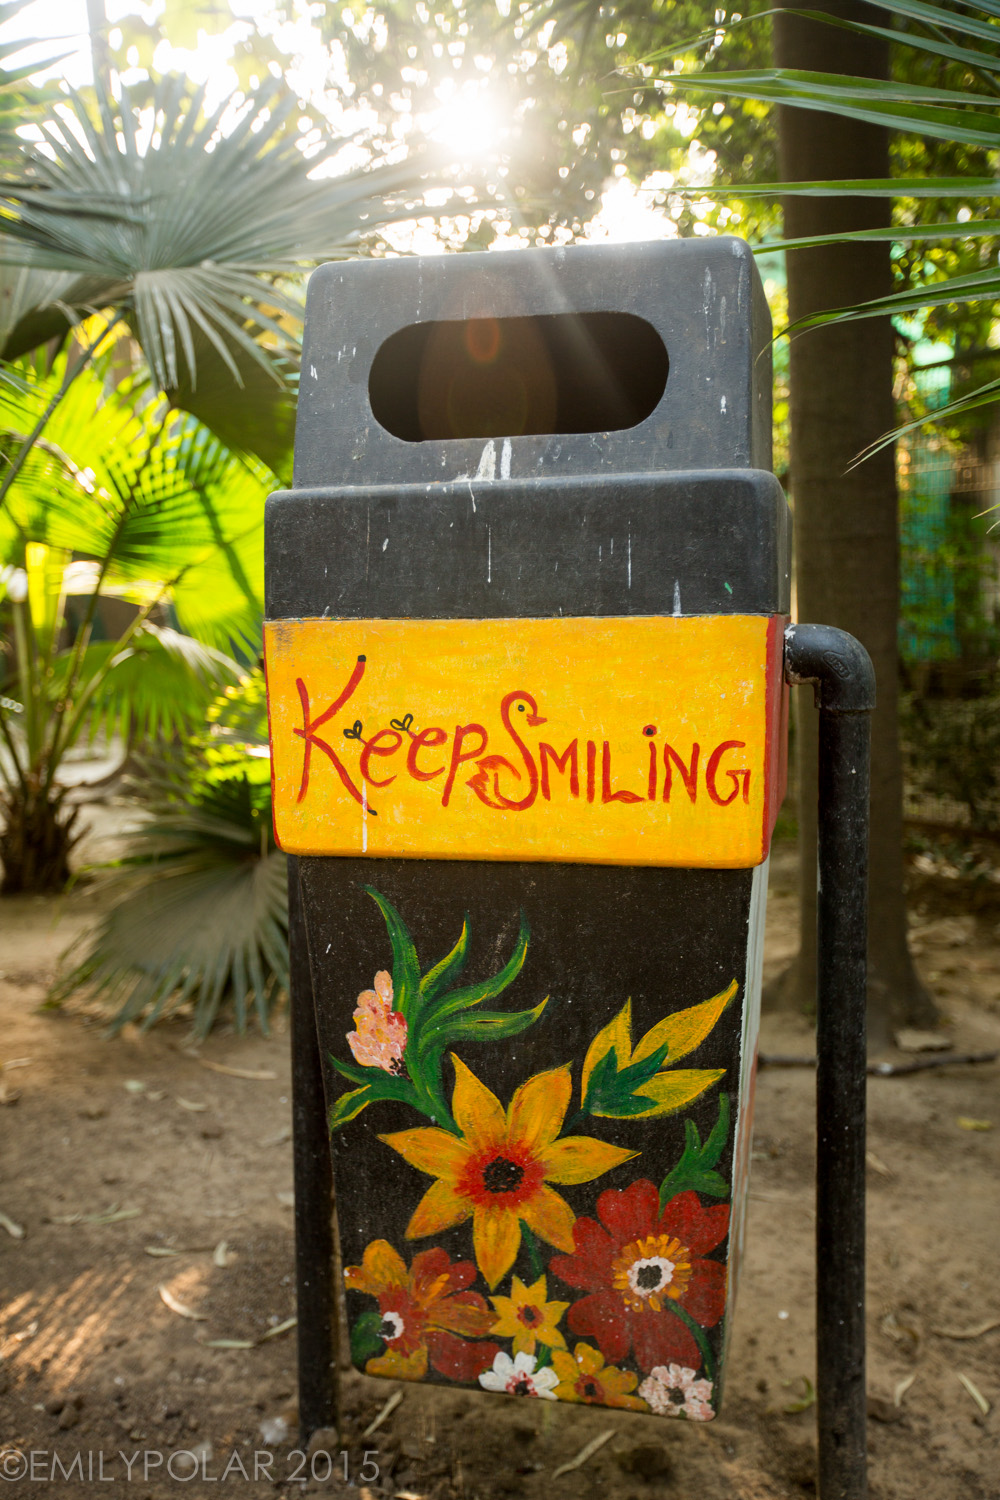 Trash can with painted flowers and keep smiling note on it in Lodi Gardens, Delhi.